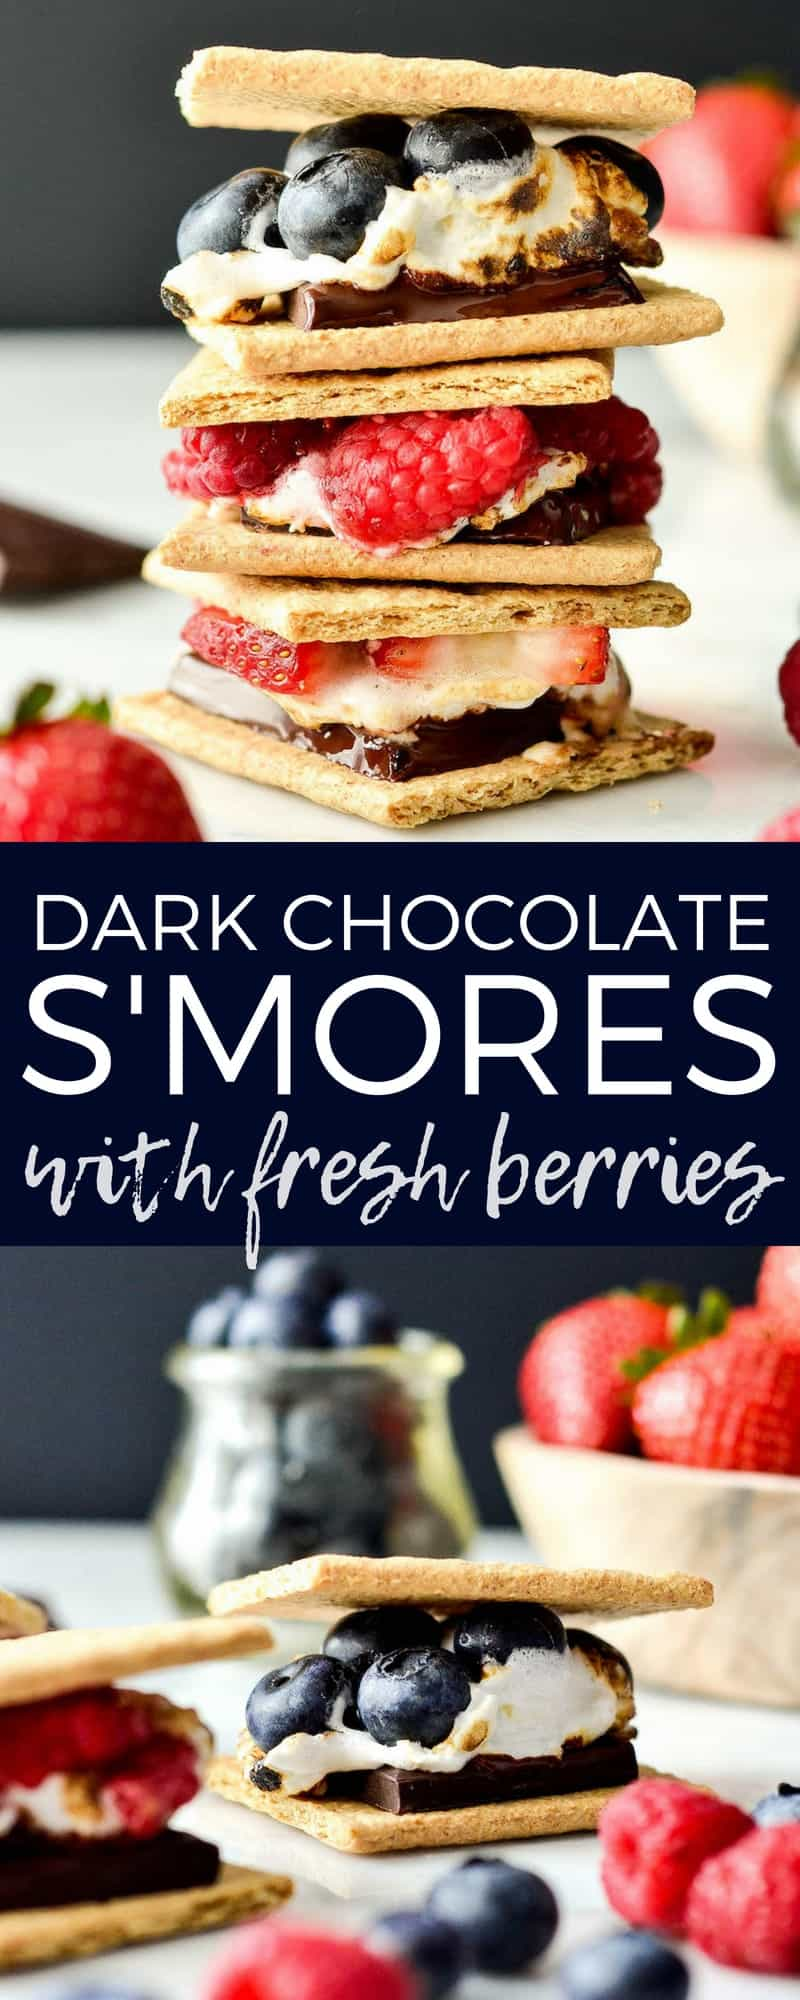 These Dark Chocolate S'mores with fresh berries are the perfect, easy summer dessert! Great for your 4th of July celebrations and bonfires! Vegan and gluten-free options! #smores #darkchocolate #bbq #dessert